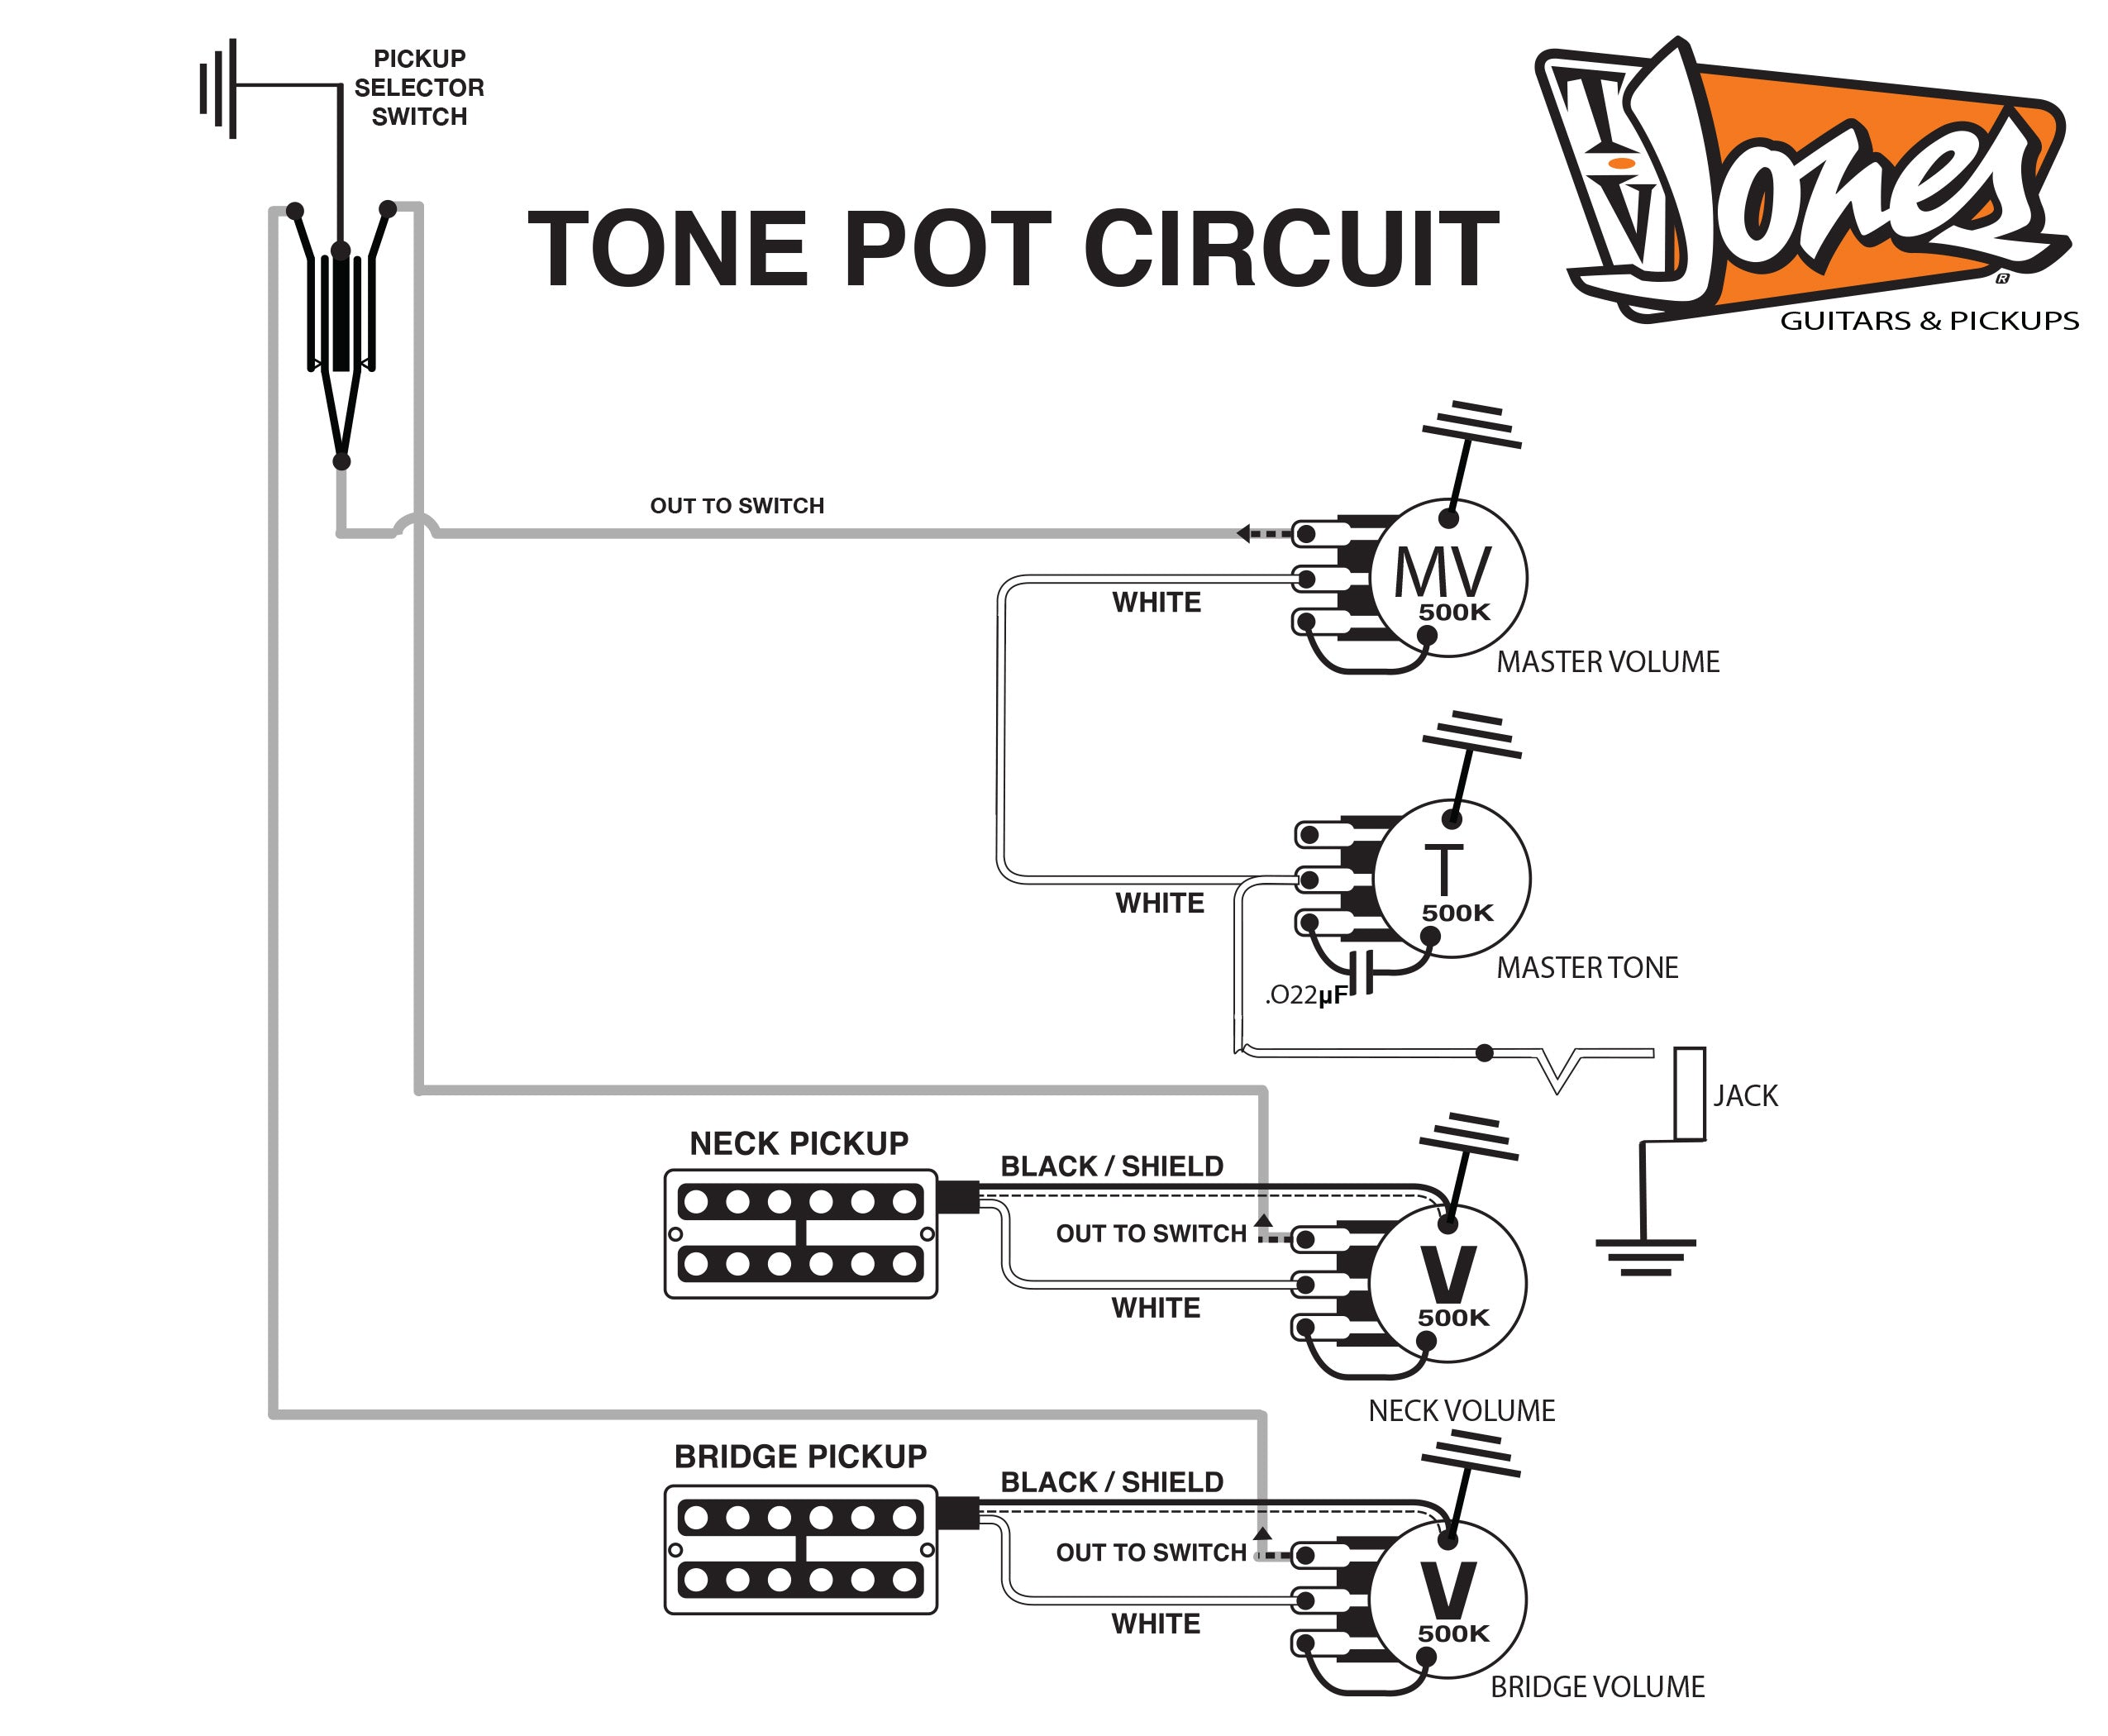 Tv Jones Product Dimensions Humbucker Single 1 Volume 3 Way Switch Wiring Diagram Humbuckers Gretsch Guitar Schematics